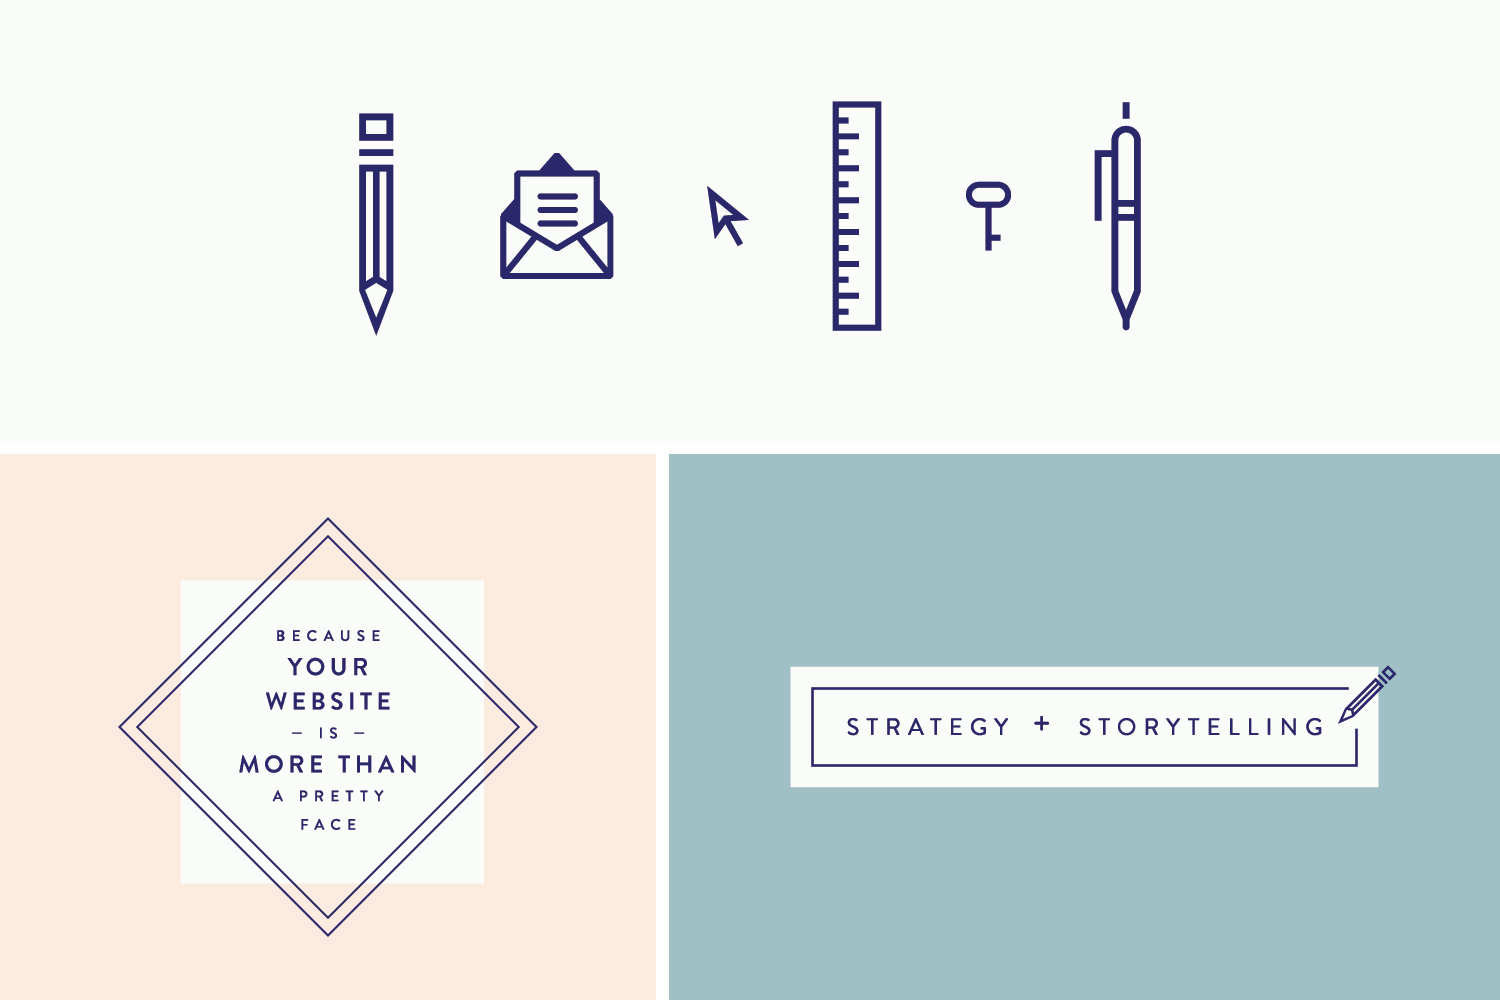 Creative, She Wrote - Custom Icons & Graphic Elements